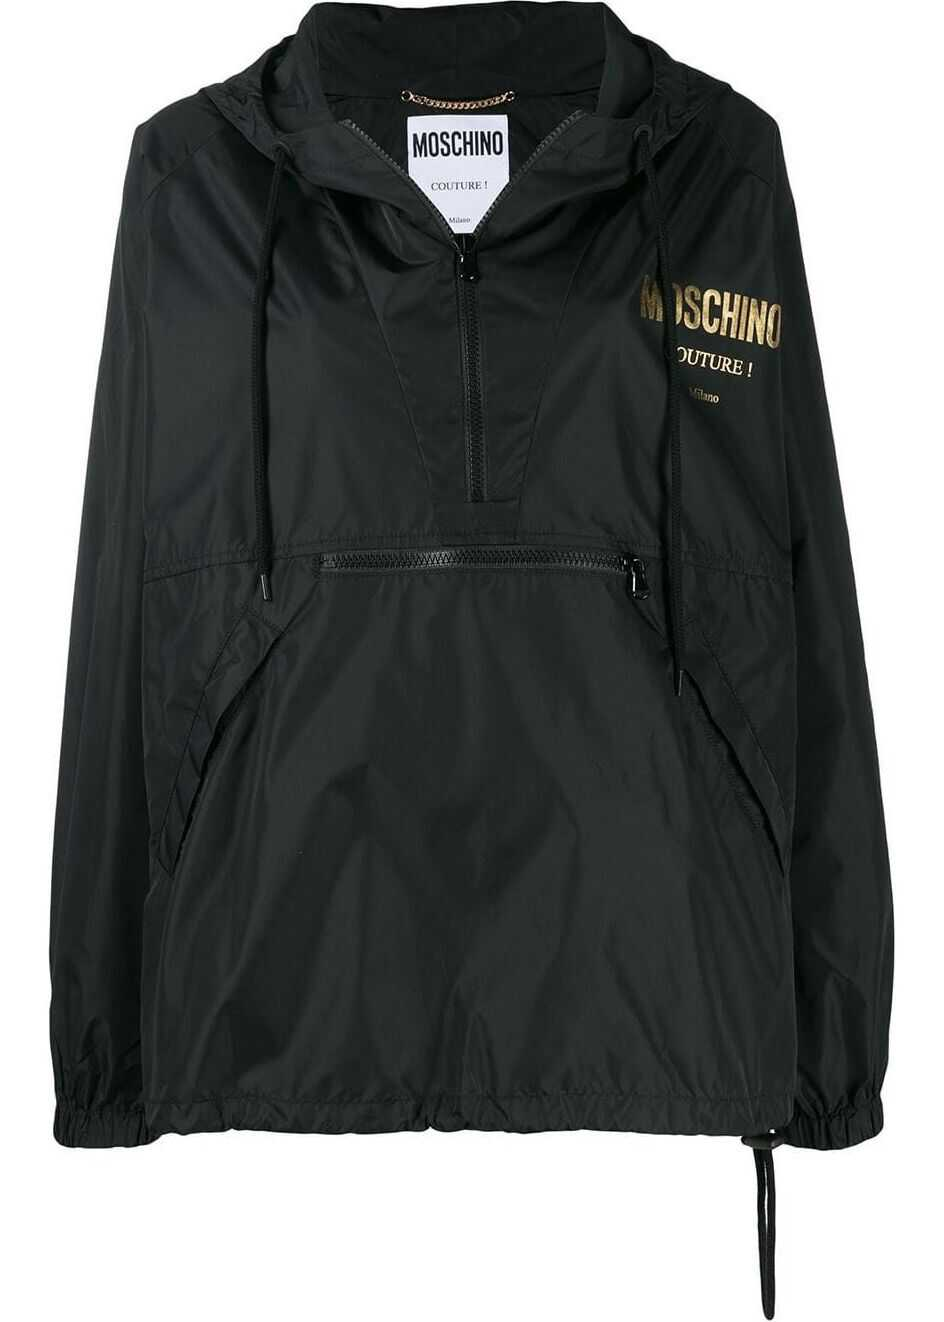 Moschino Polyamide Outerwear Jacket BLACK